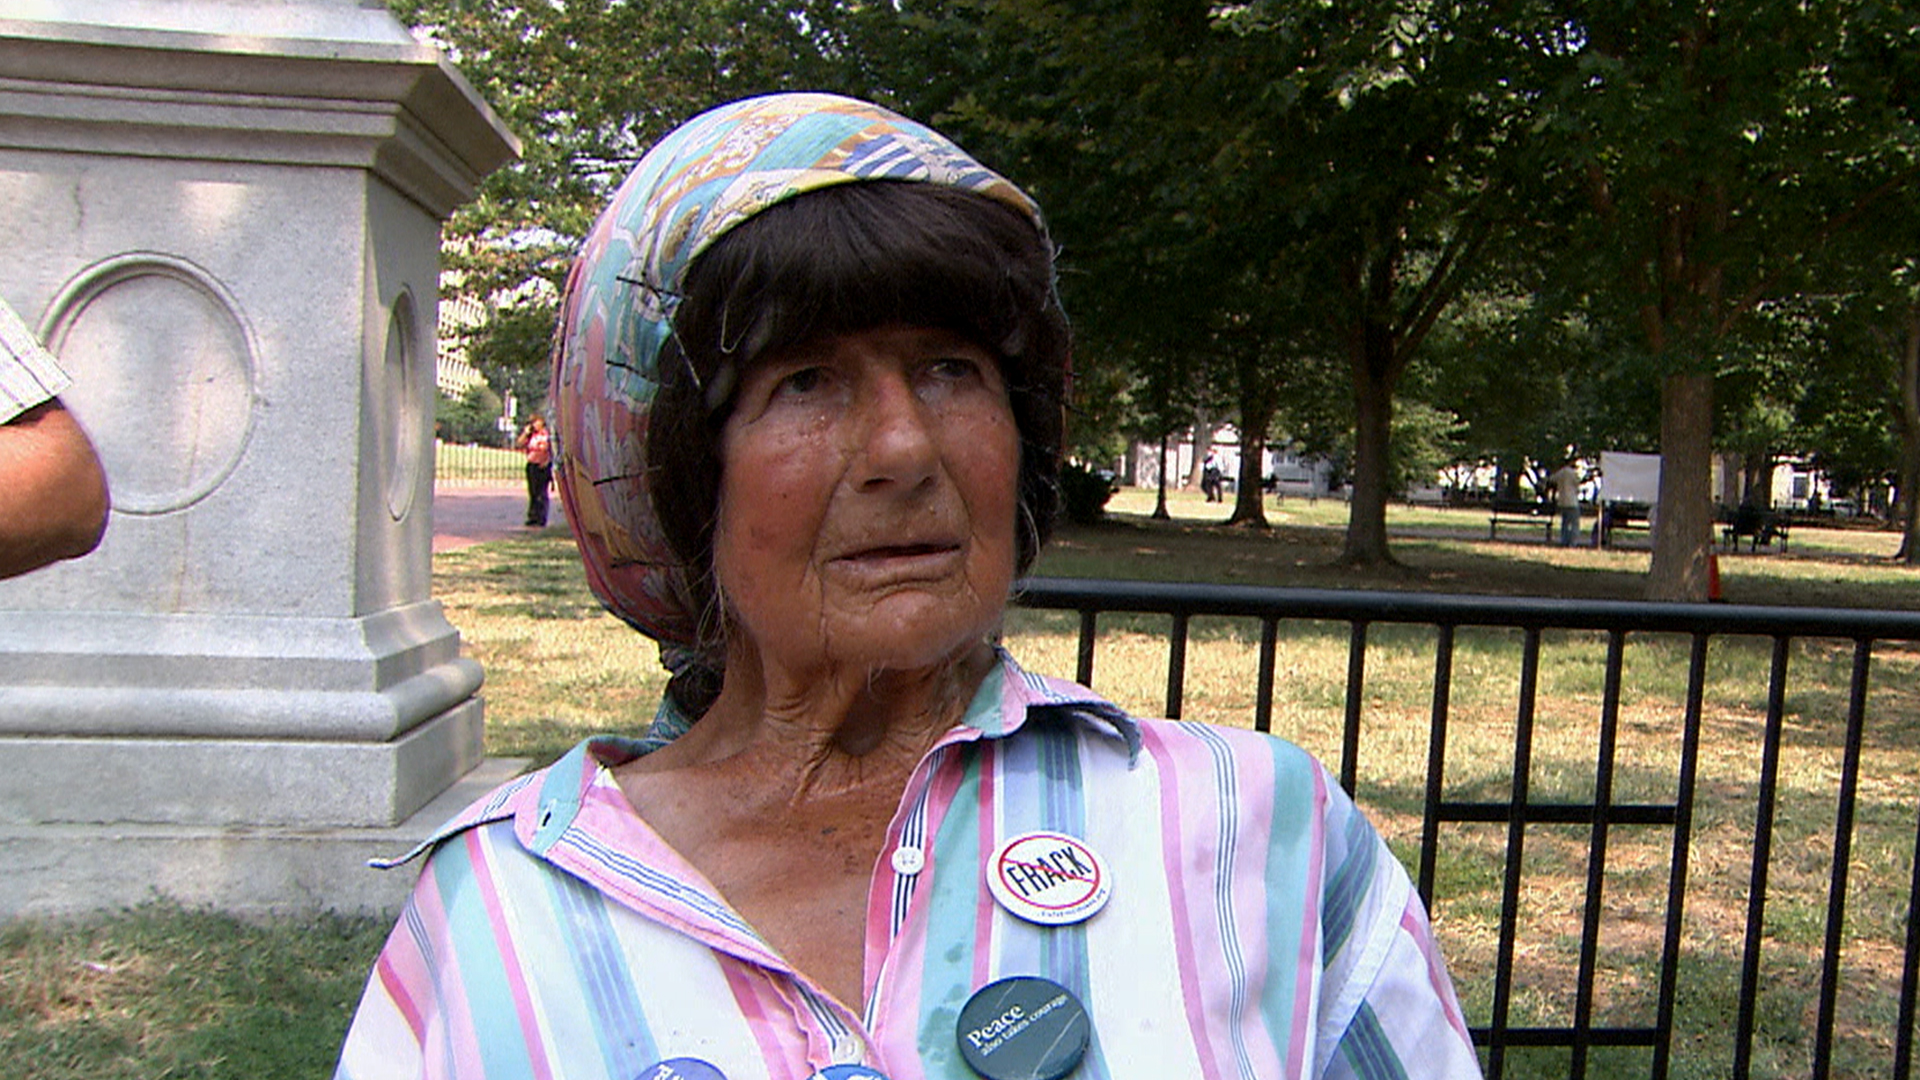 Woman Who Held Decades-Long Protest Outside of White House Dies